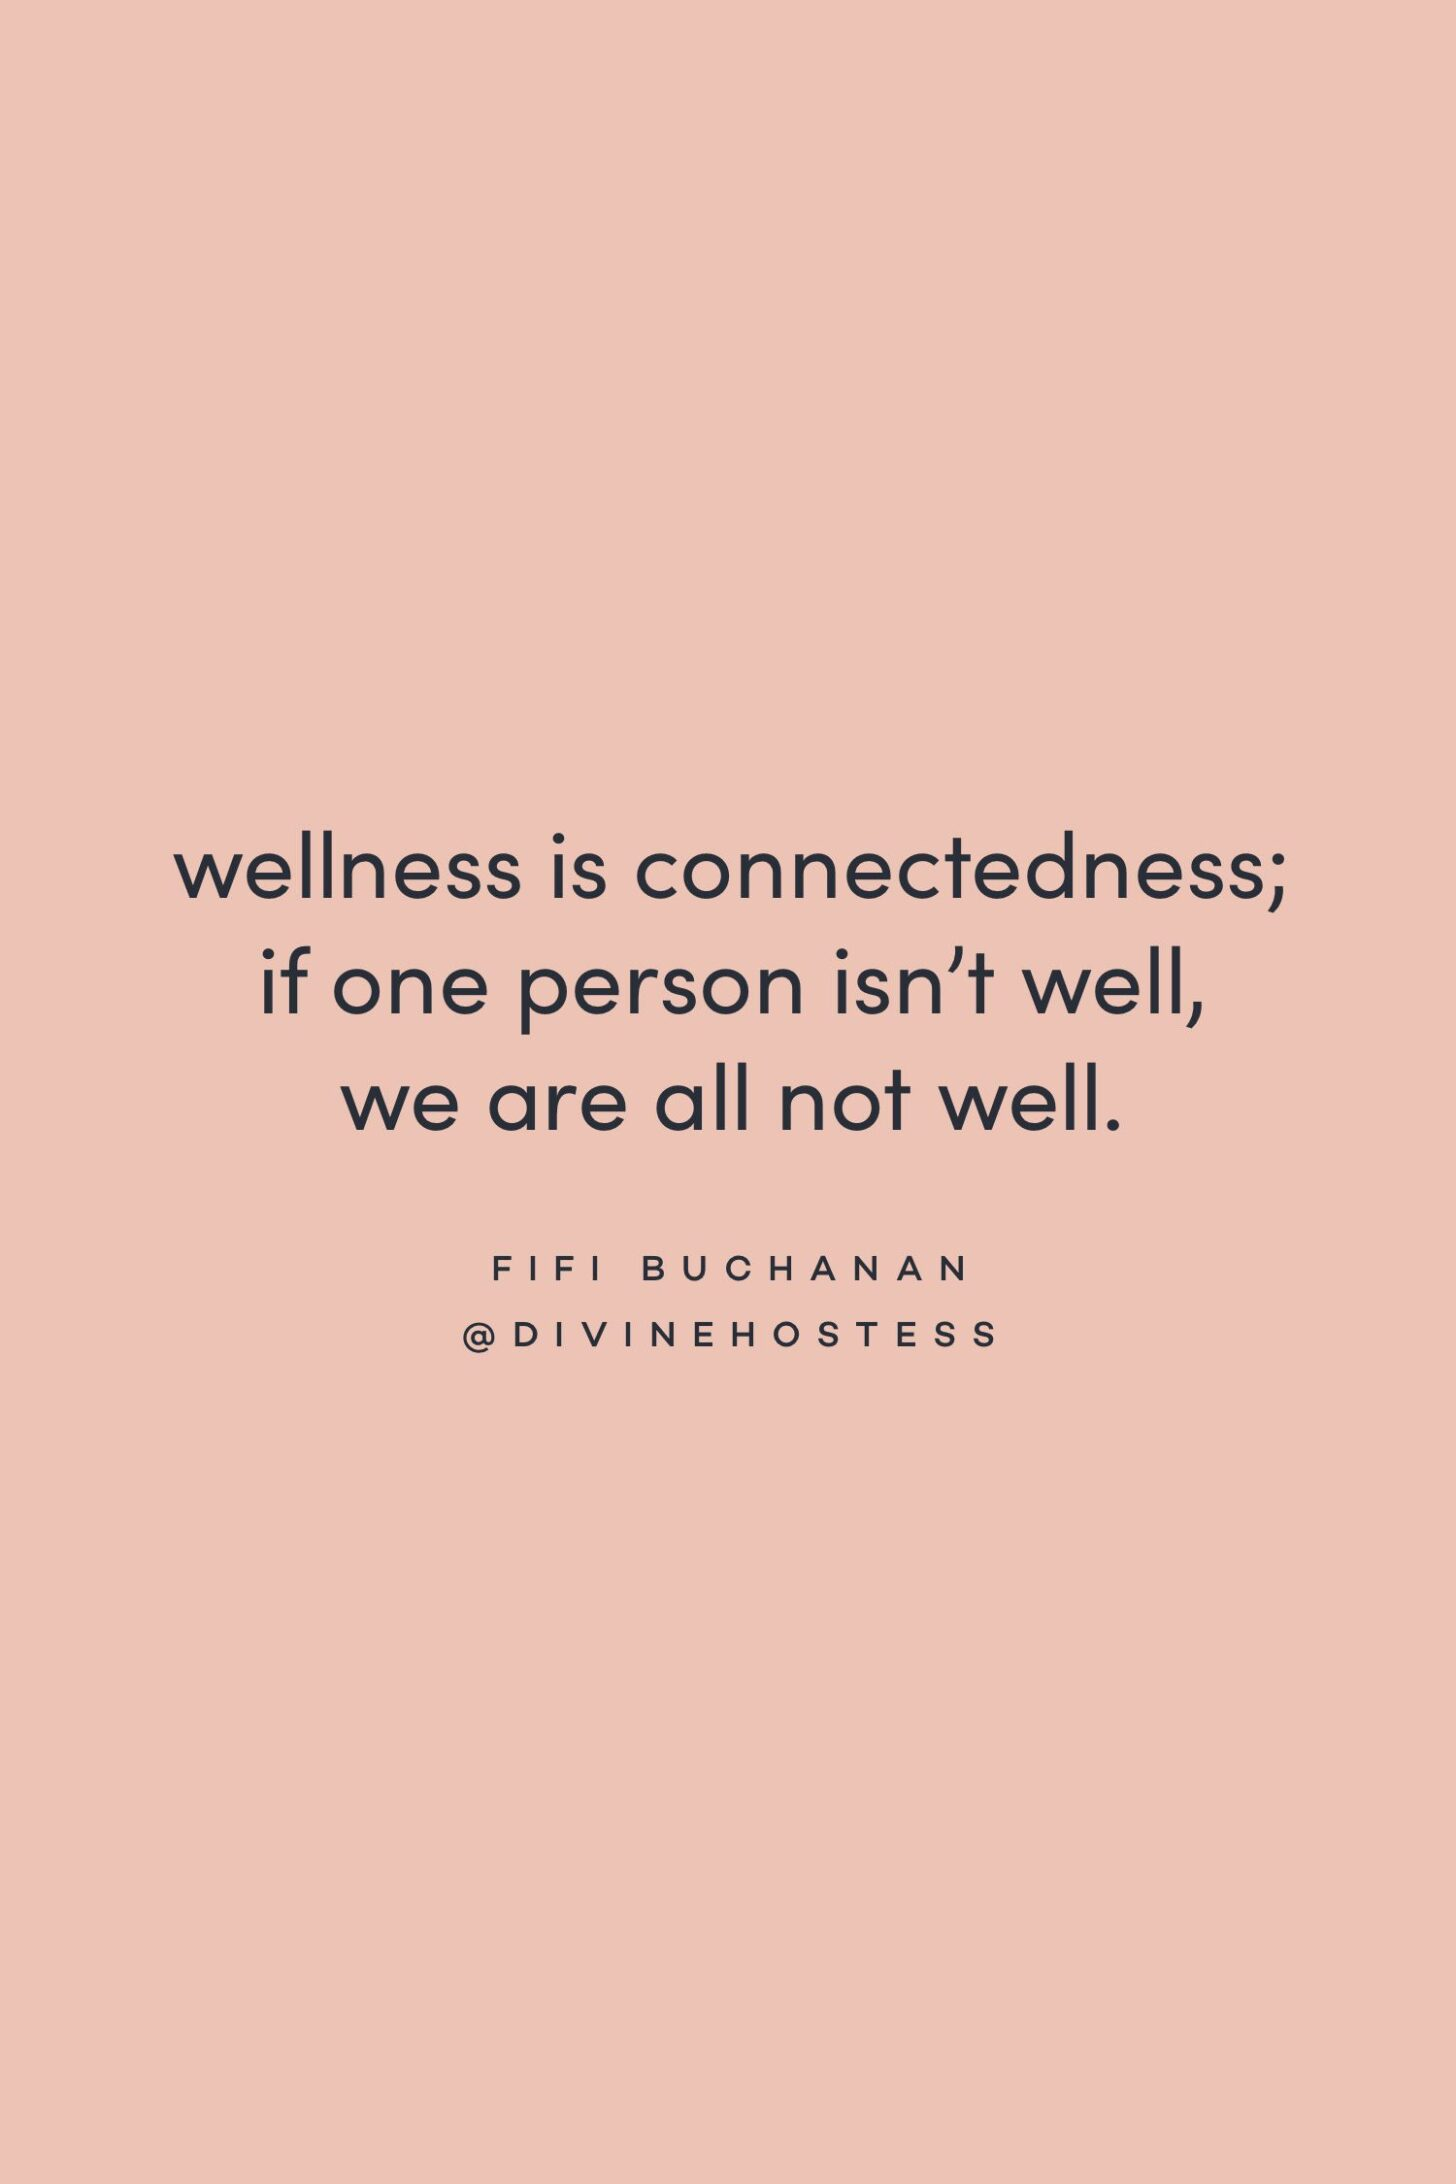 Quote on being self-care by Fifi Buchanan on the Feel Good Effect Podcast #realfoodwholelife #feelgoodeffectpodcast #positivityquote #motivationalquote #inspirationalquote #mindfulnessquote #selfcarequote #selfcompassionquote #selfworthquote #presencequote #healthyquote